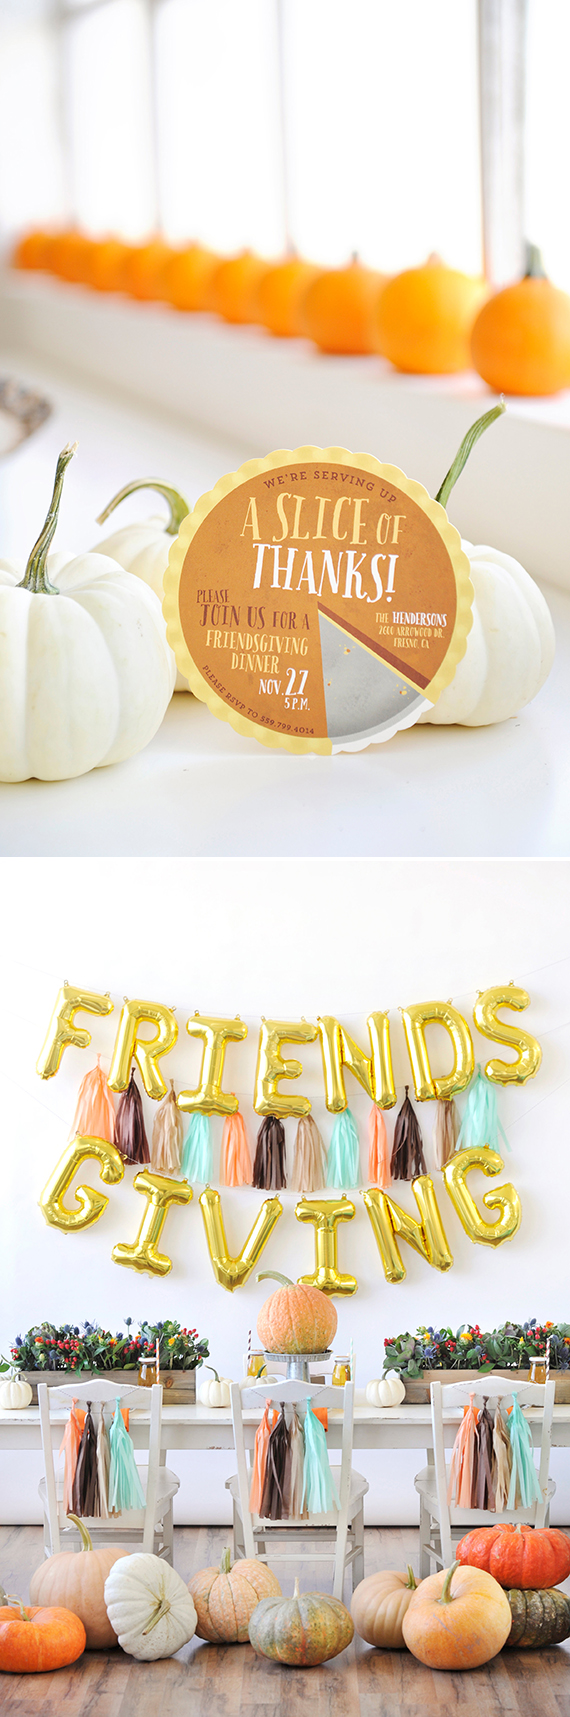 Friendsgiving Party Ideas